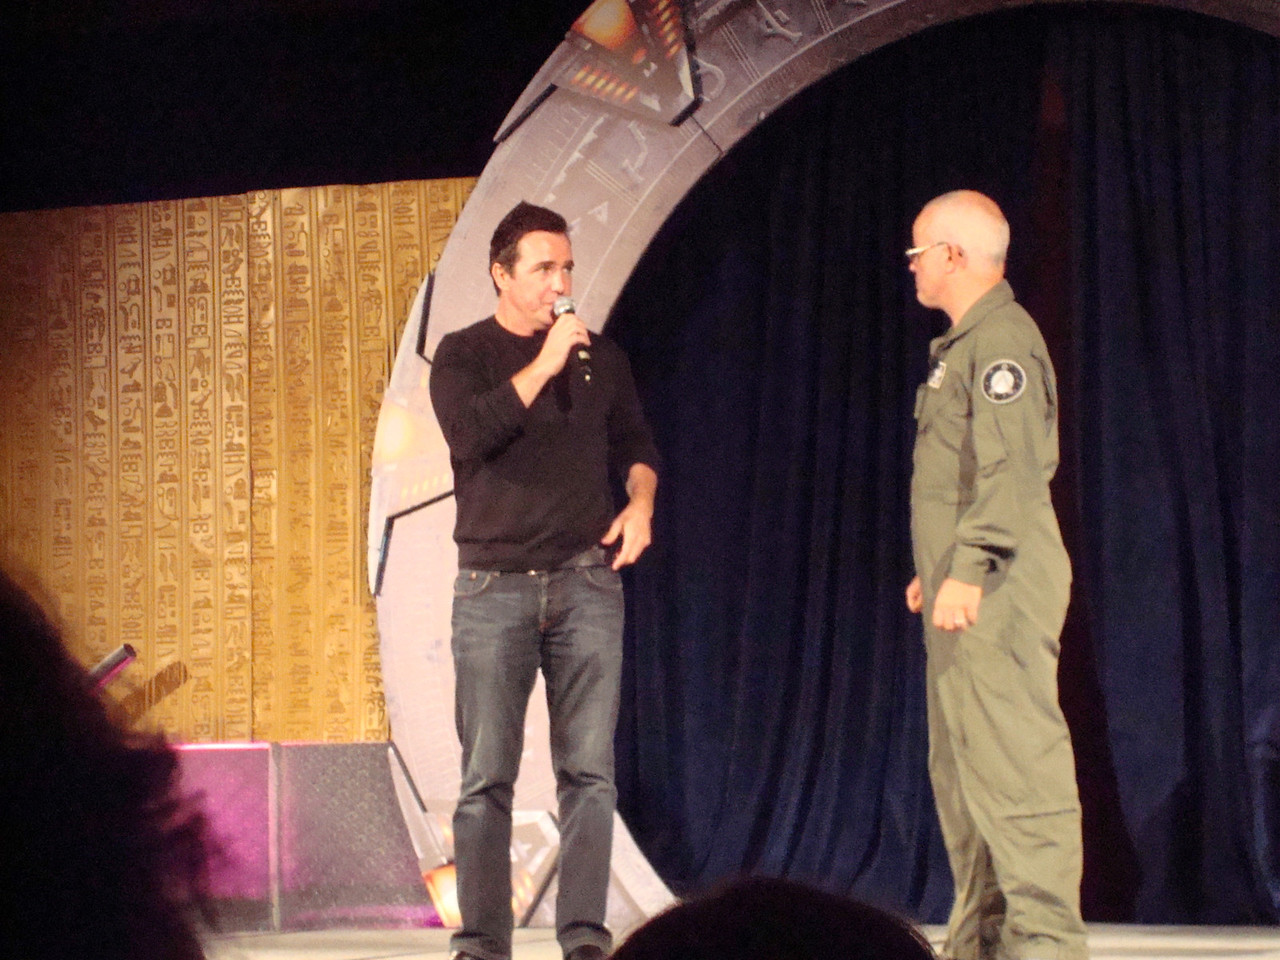 Starhole (play/improv thing). Paul McGillion, Gary Jones.